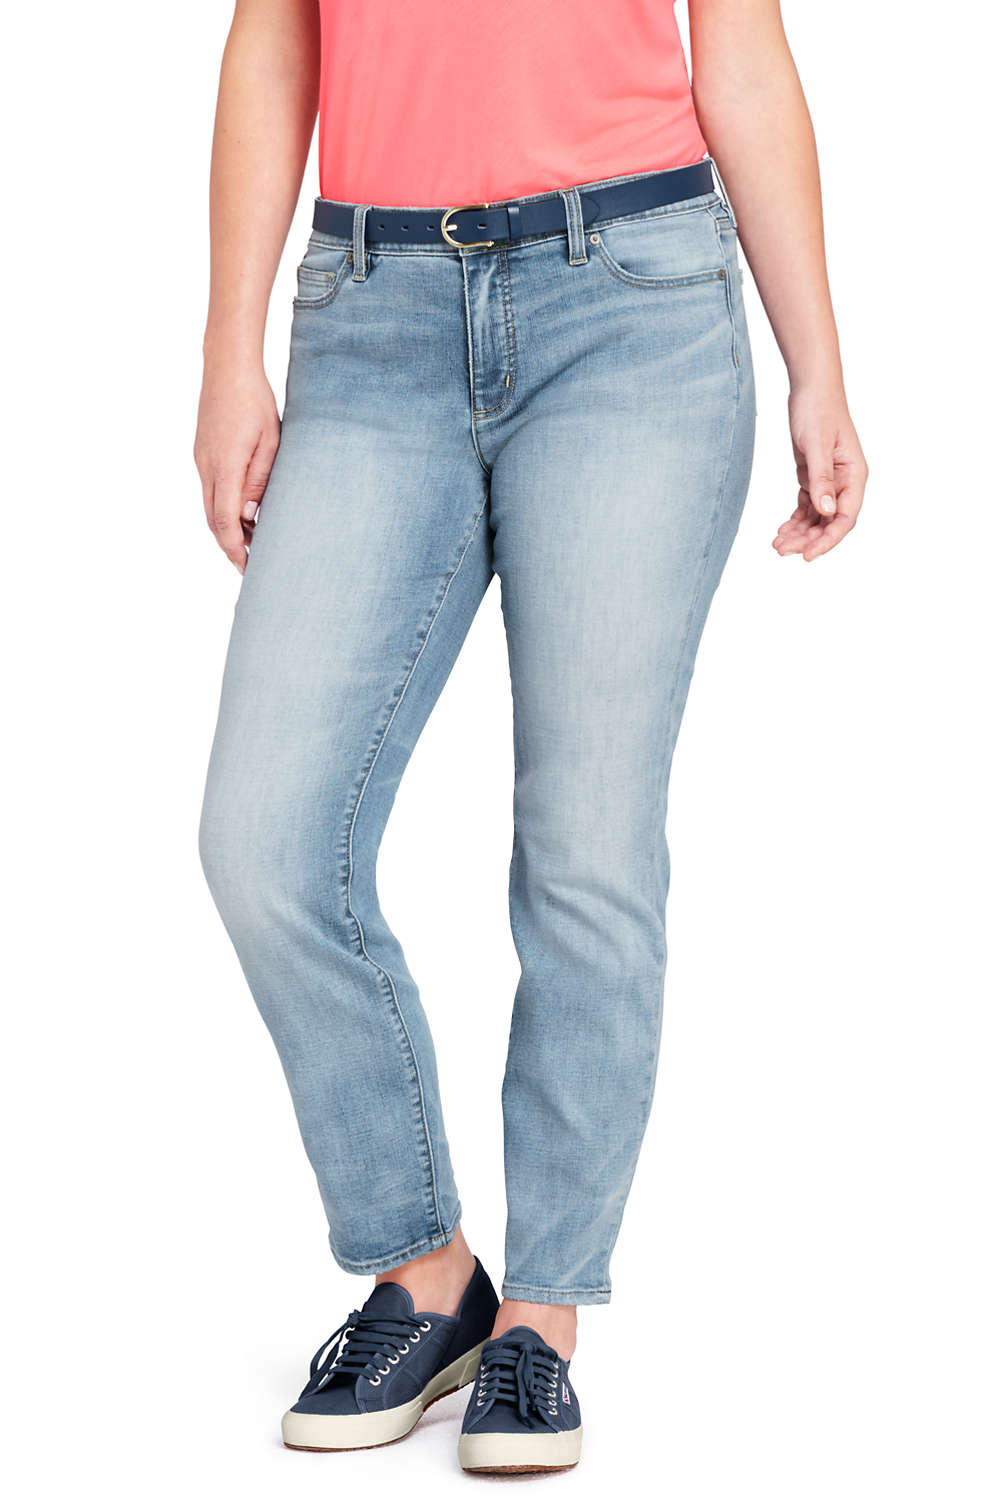 eca5047e1da7c Women s Not-Too-Low Rise Slim Leg Jeans from Lands  End